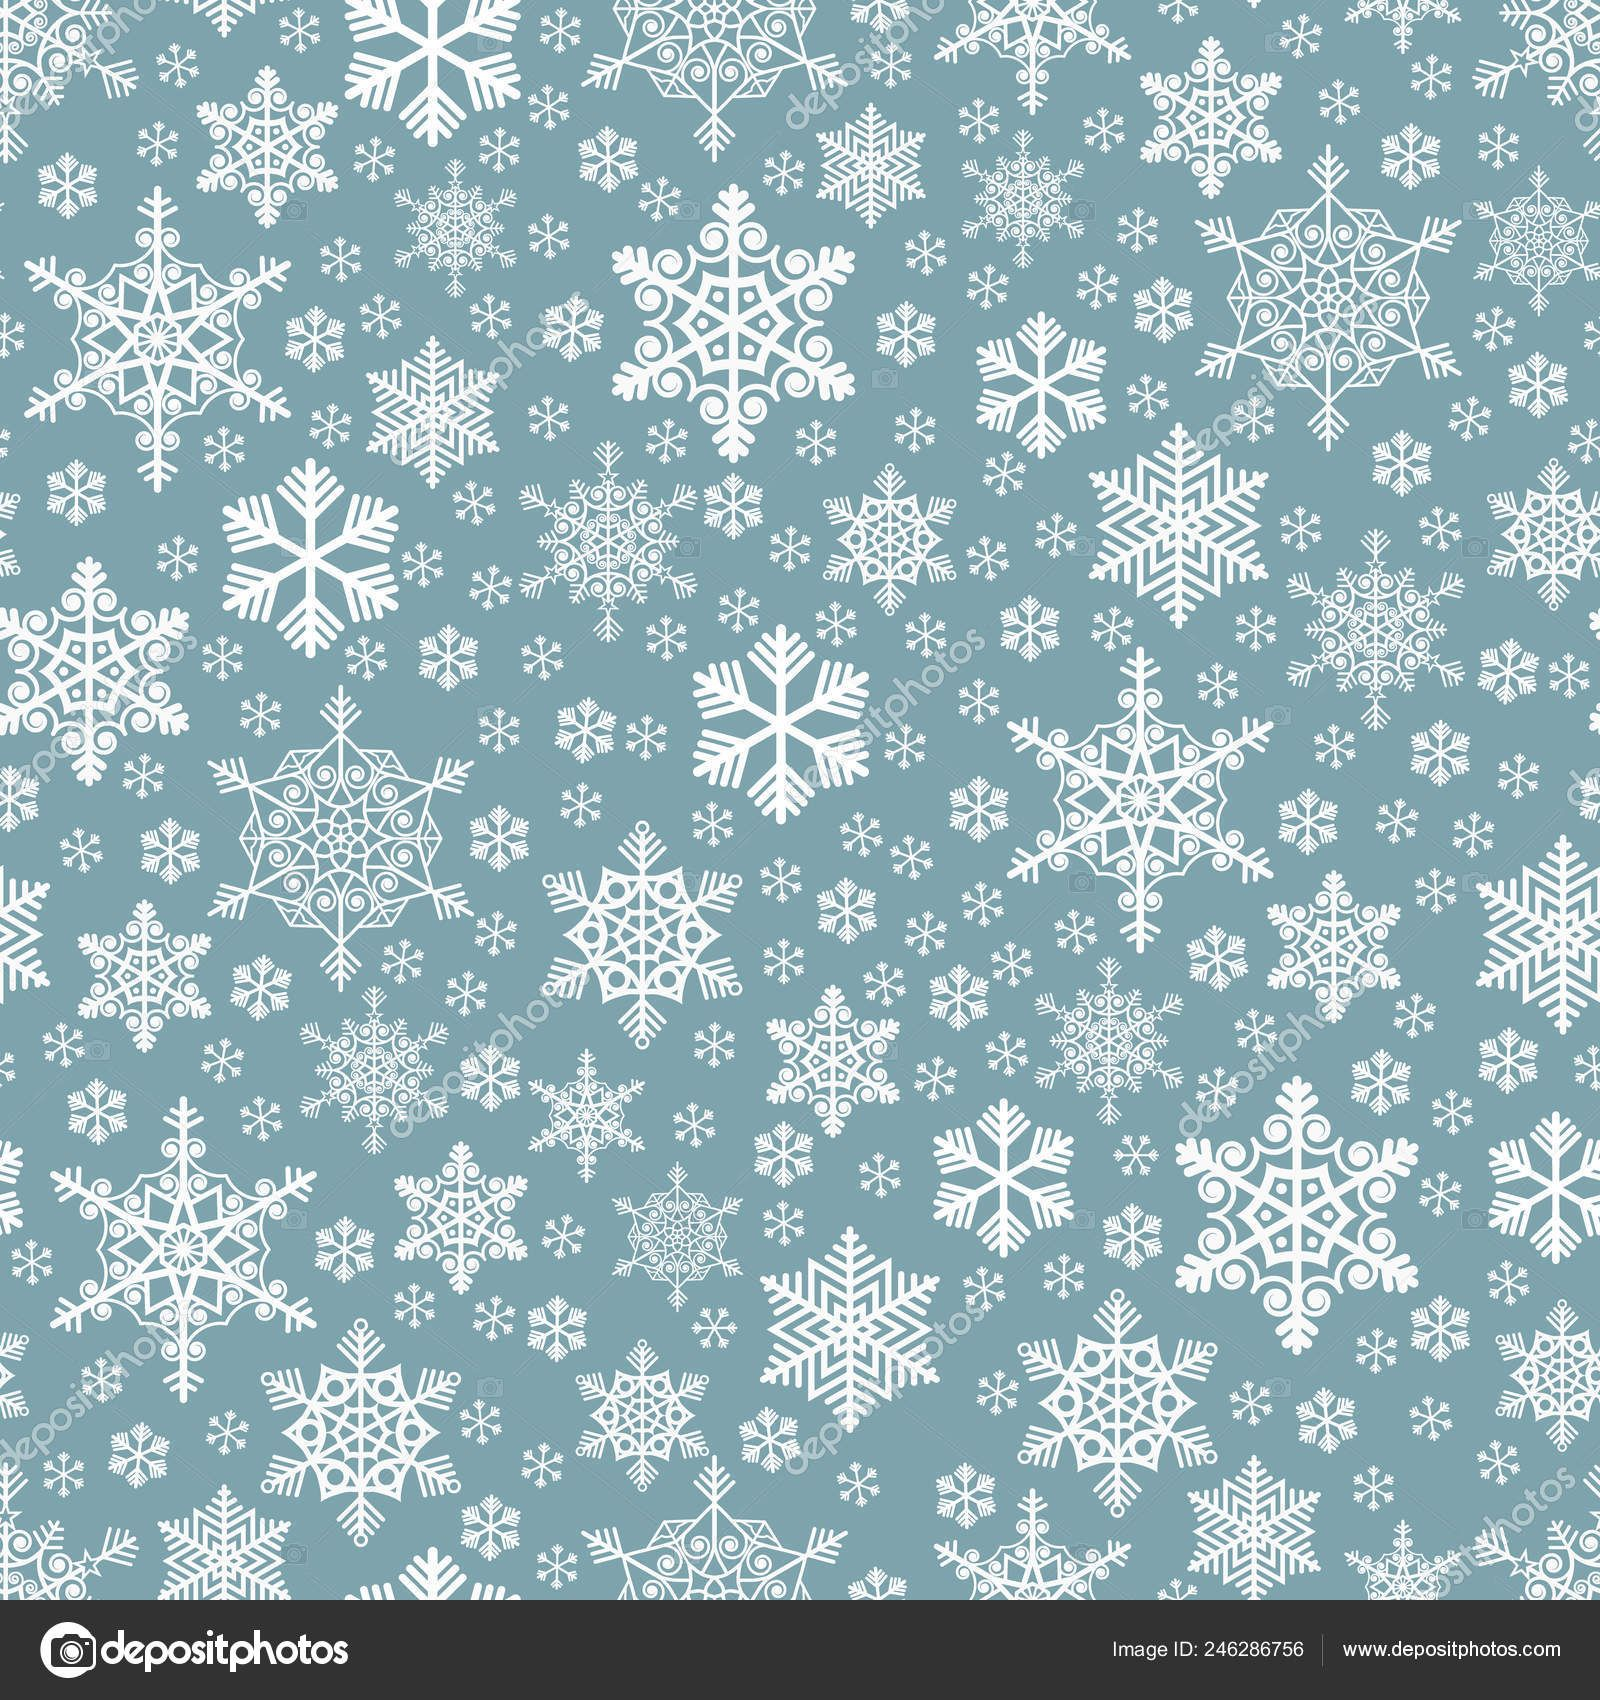 Download seamless densely packed white snowflakes